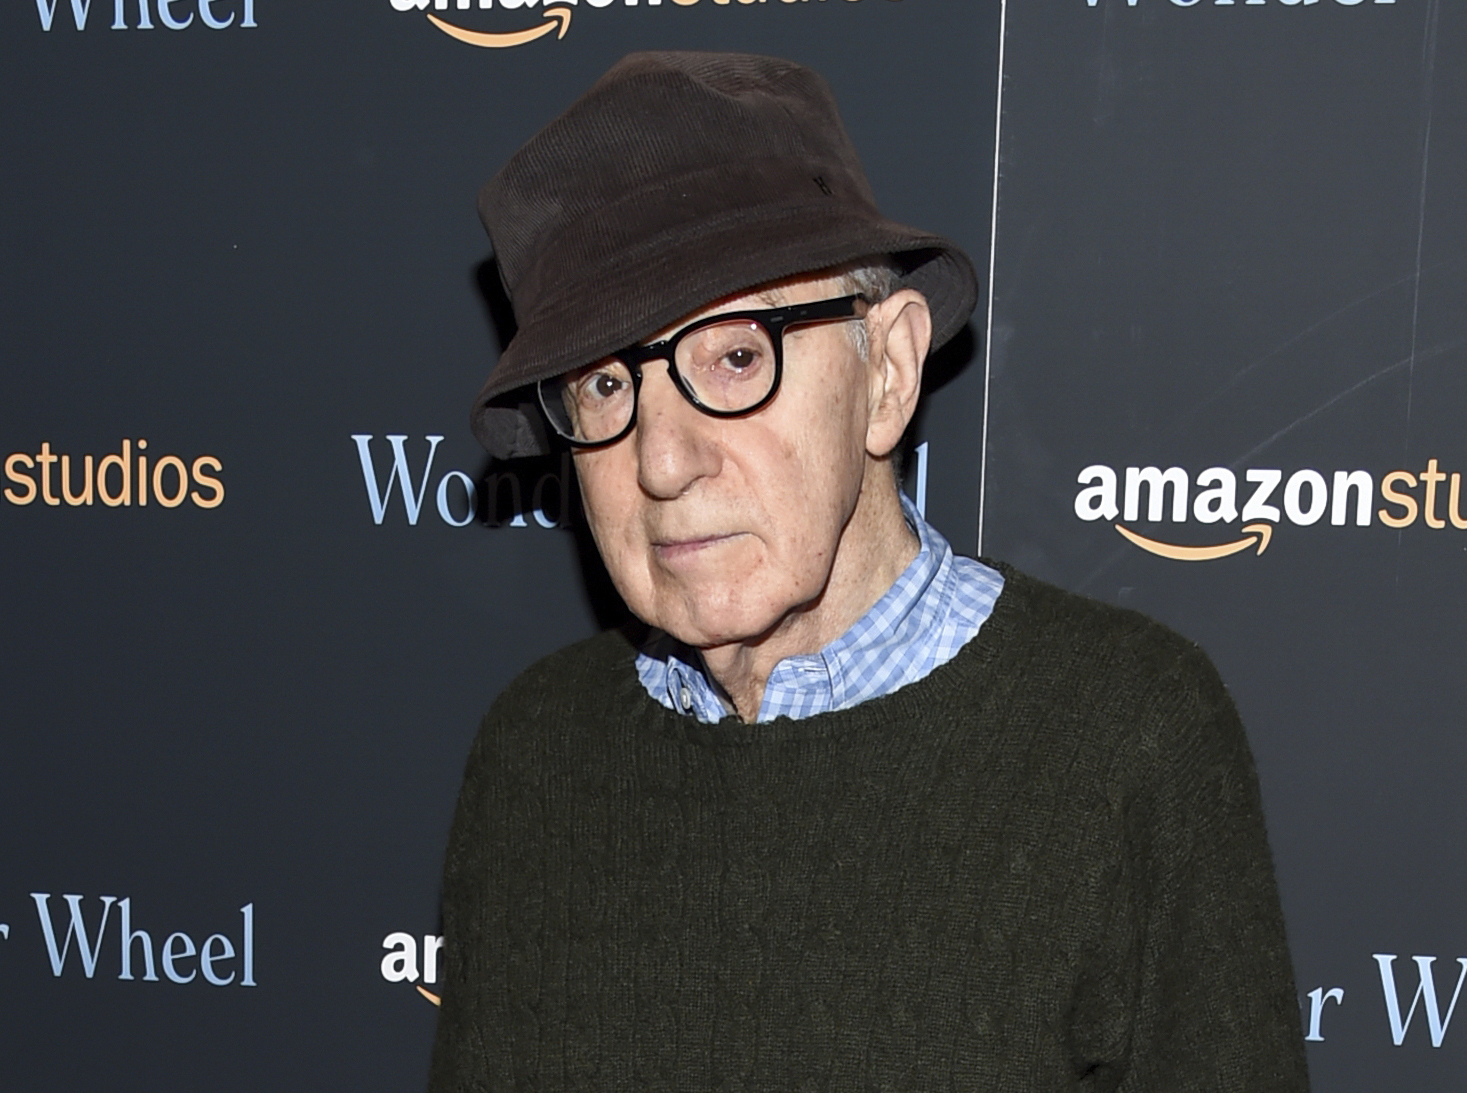 Woody Allen lost four-movie Amazon deal over #MeToo comments, company says